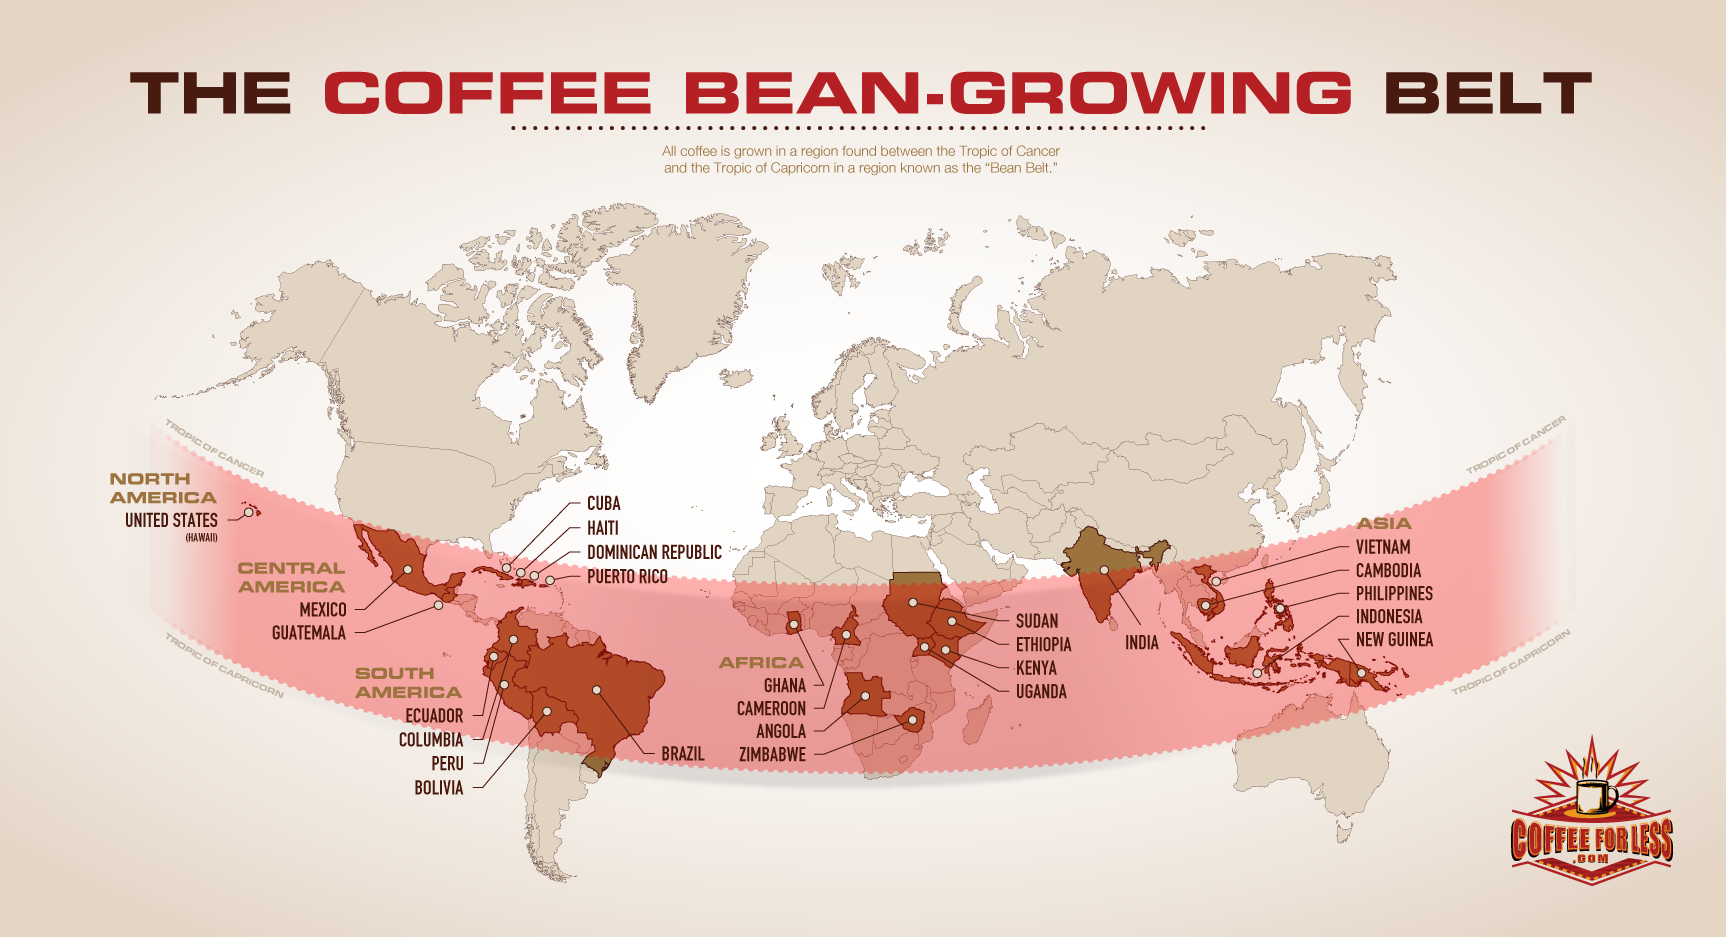 Coffee grows only in the Coffee Bean Belt, between the Tropics of Cancer and Capricorn.